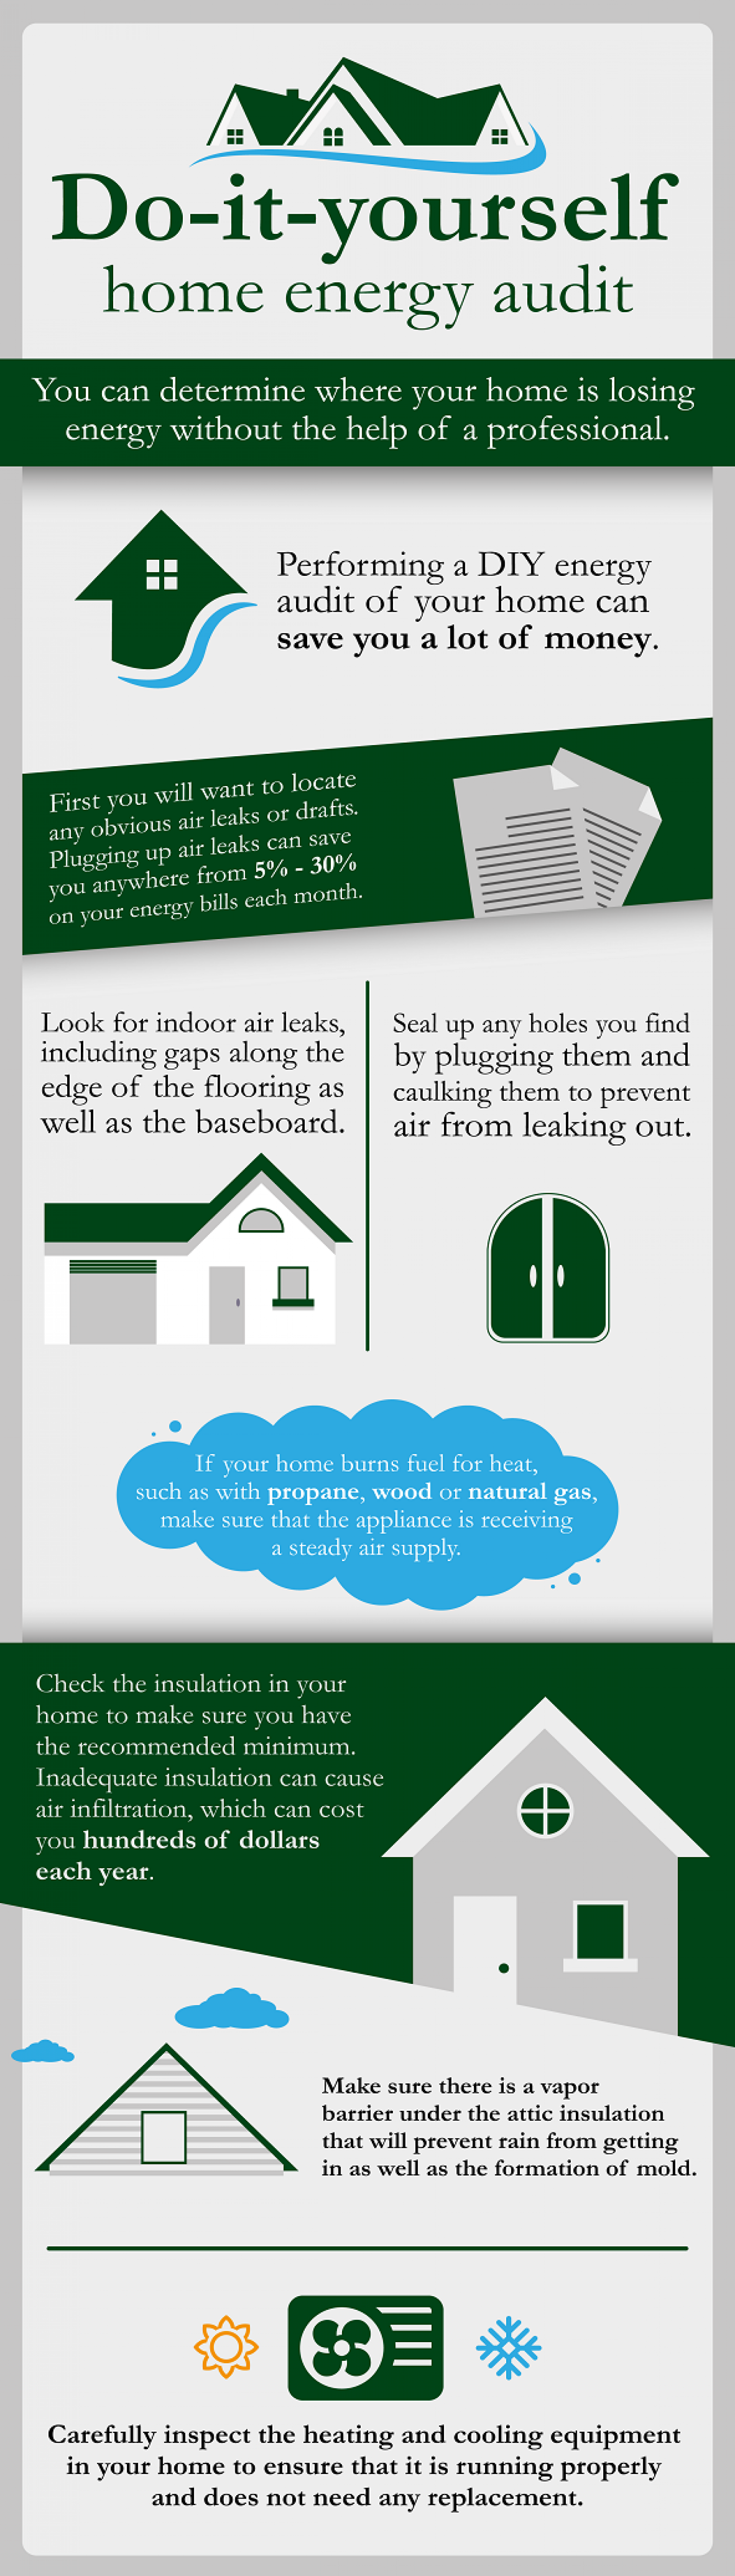 Learn About Our company our #1 Home Energy Audit Services